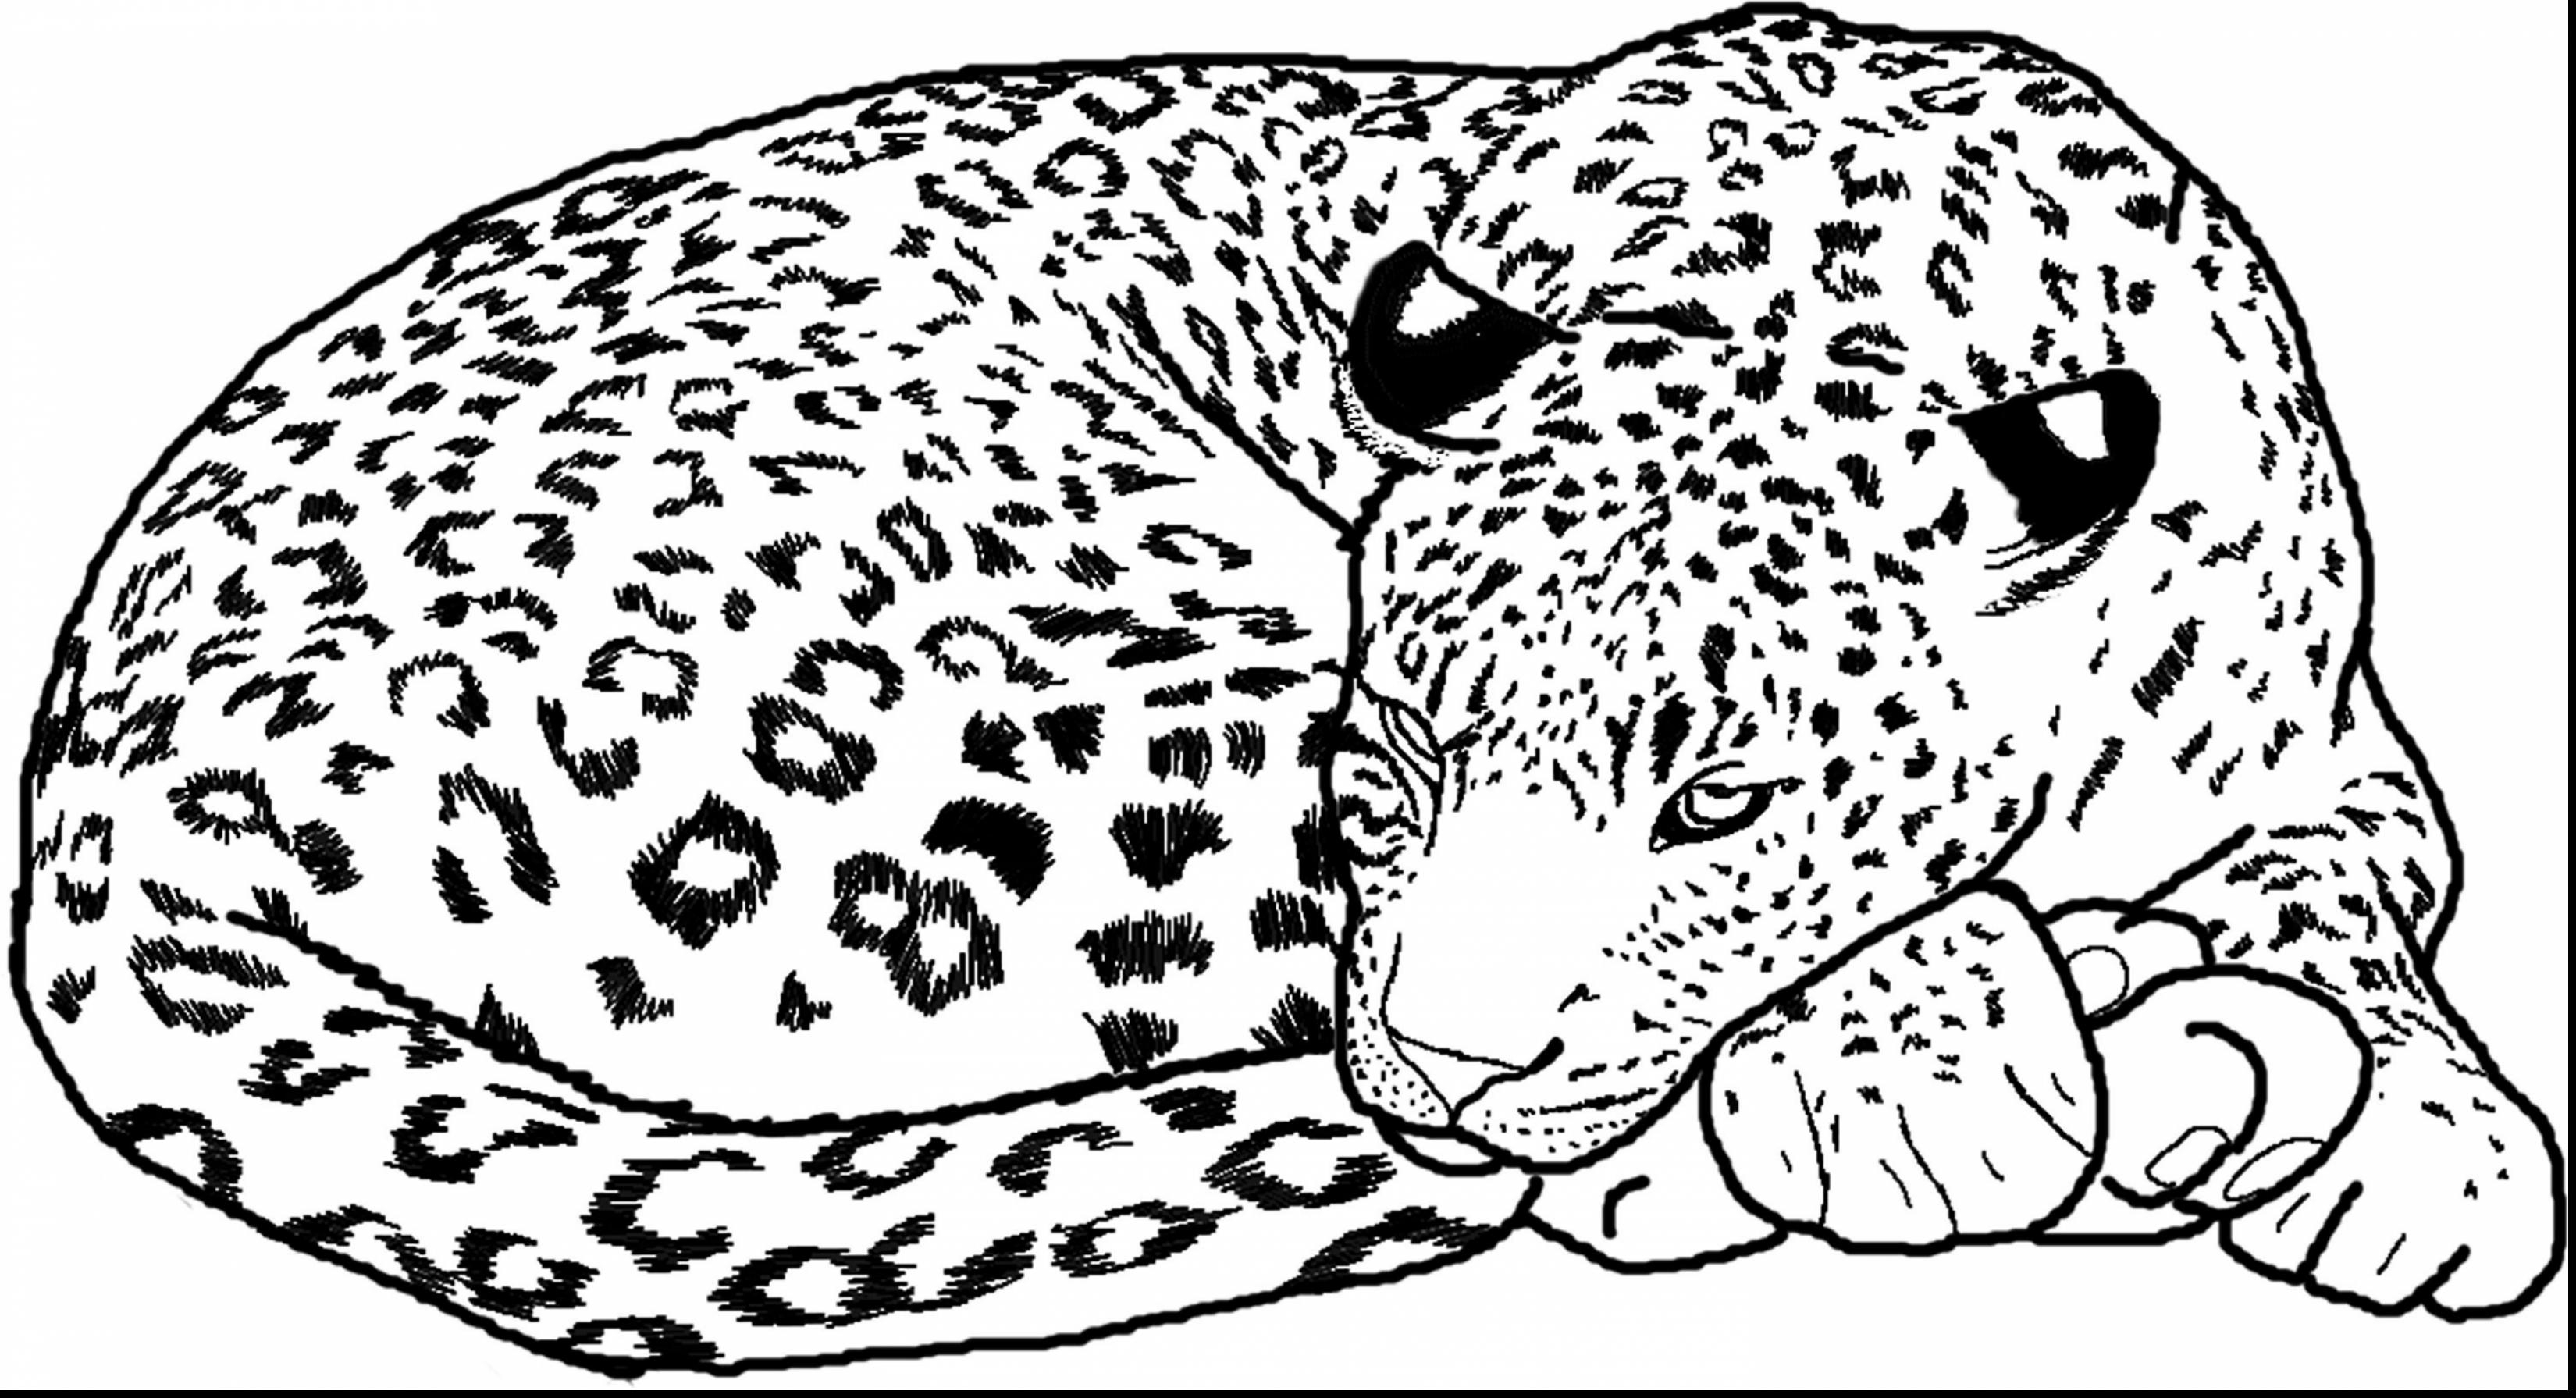 Snow Leopard Coloring Pages - Snow Leopard Coloring Pages Auromas Coloring Home